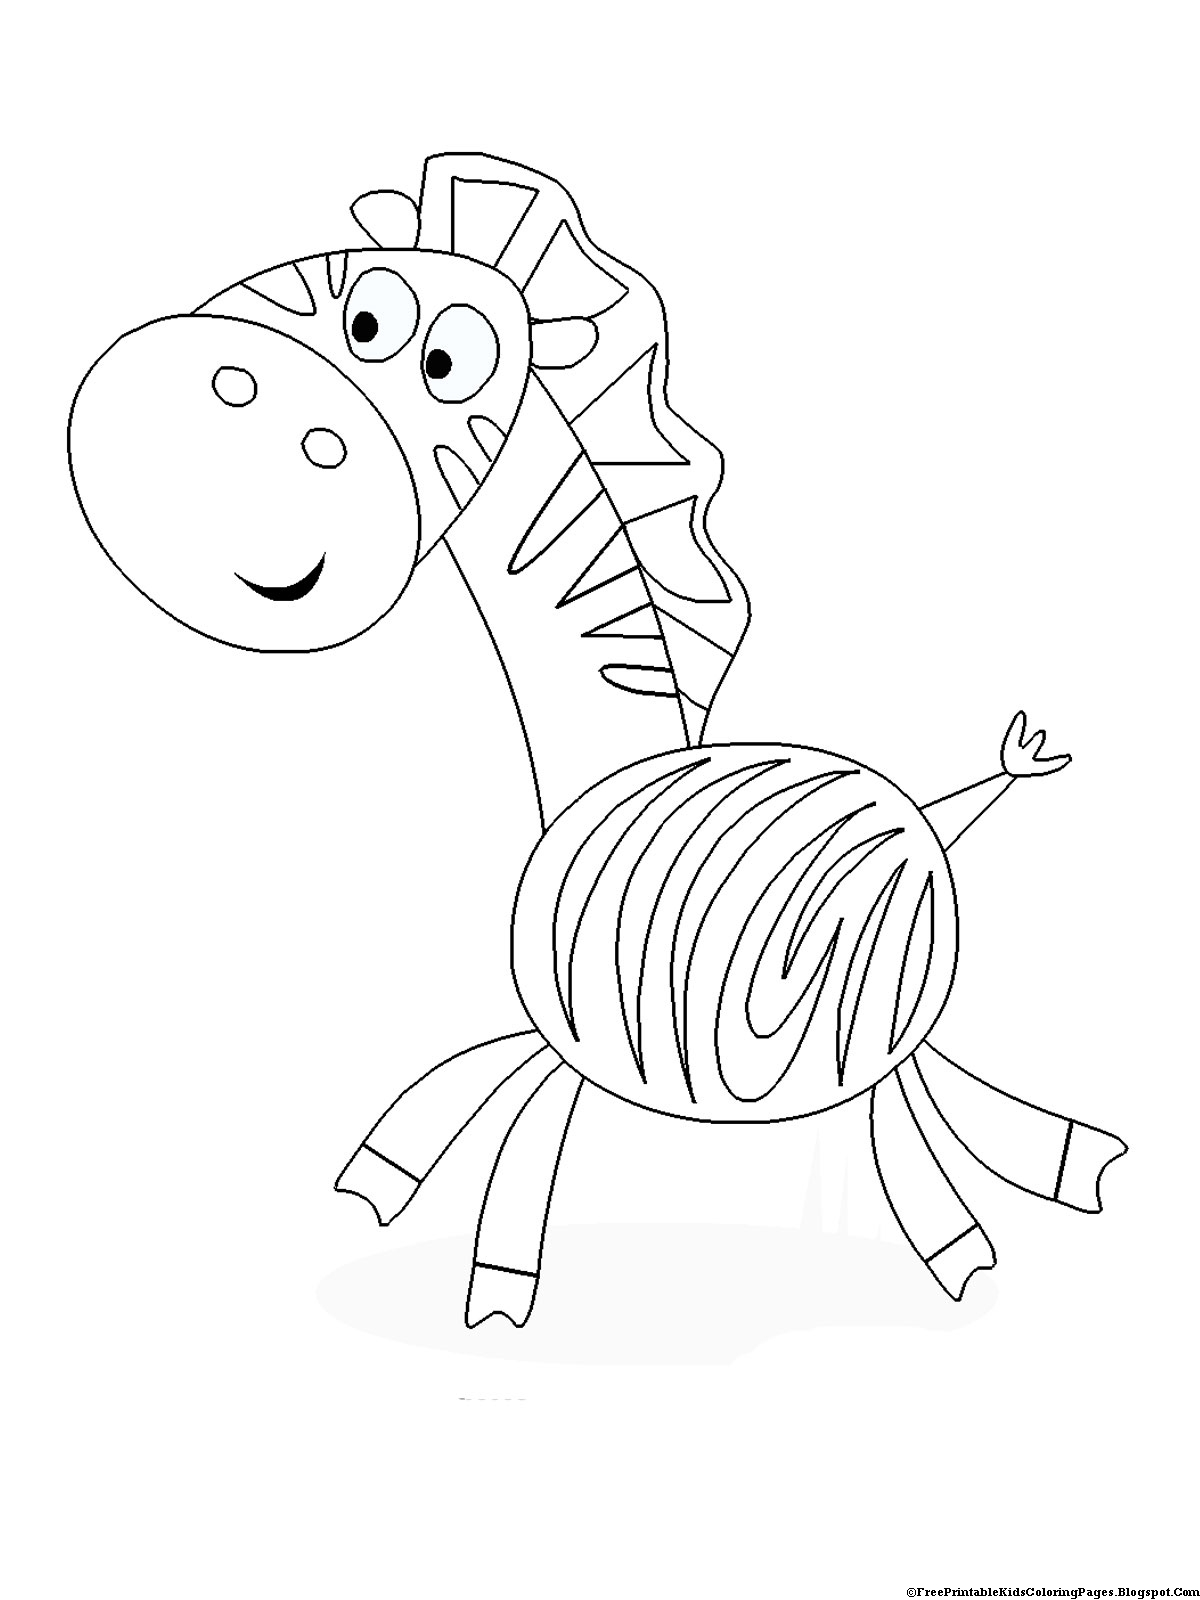 Zebra Coloring Pages - Free Printable Kids Coloring Pages | printable coloring pages for toddlers